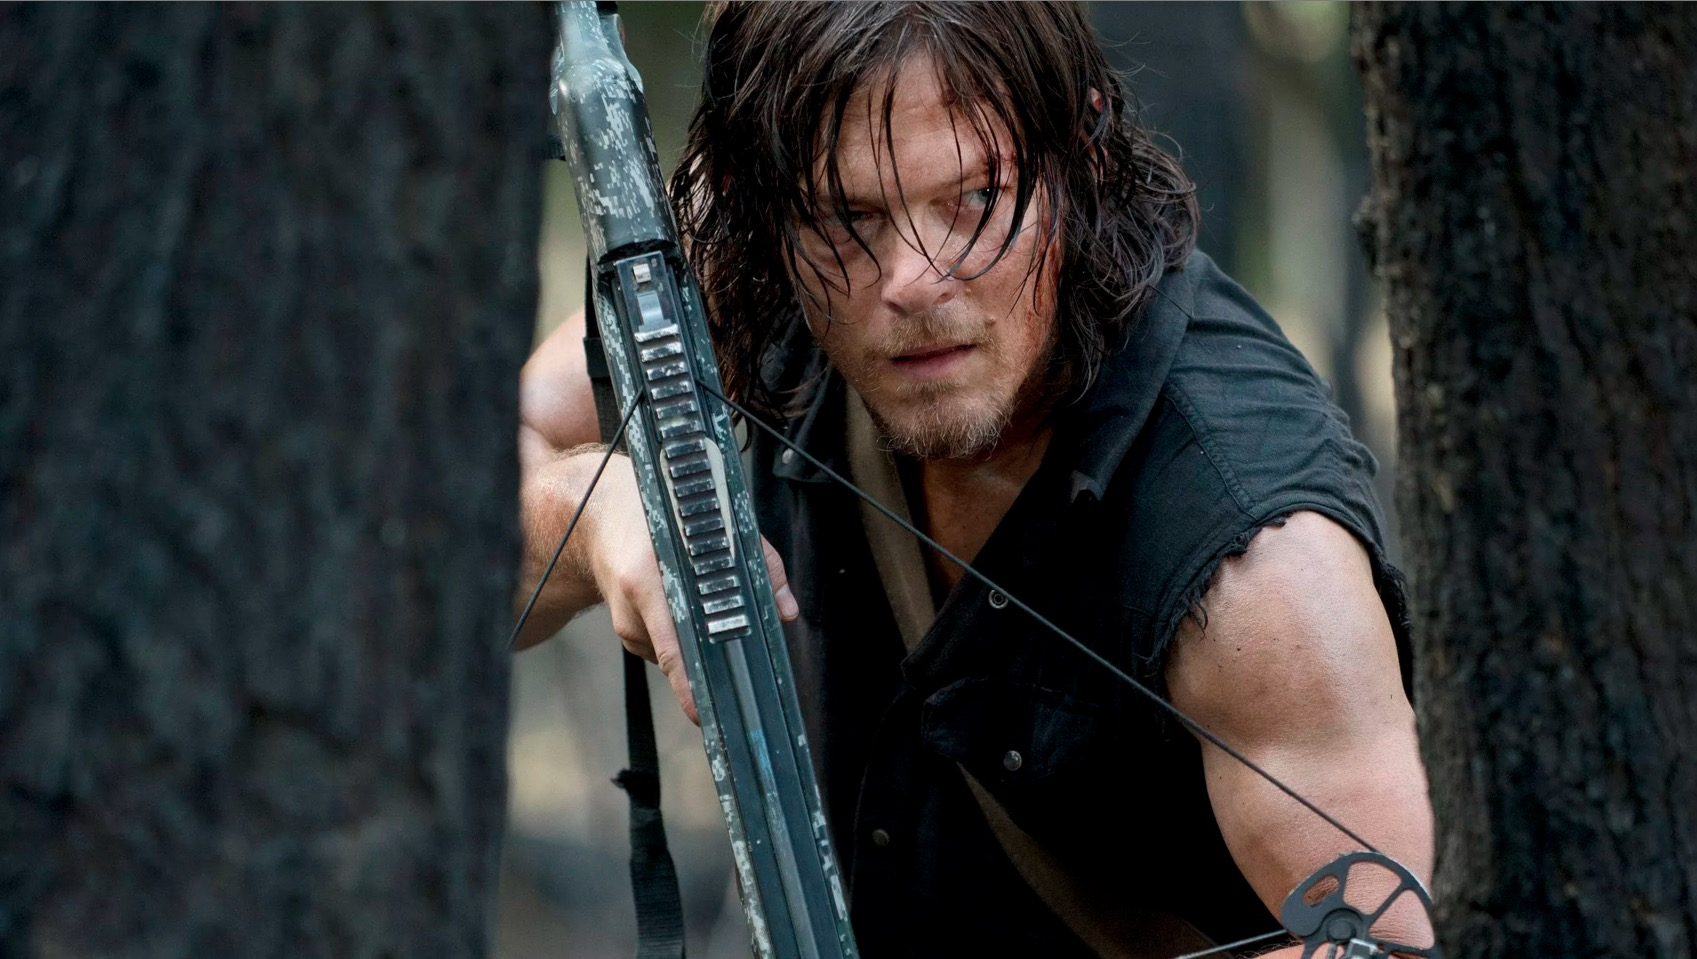 The walking dead wallpaper season 4 daryl